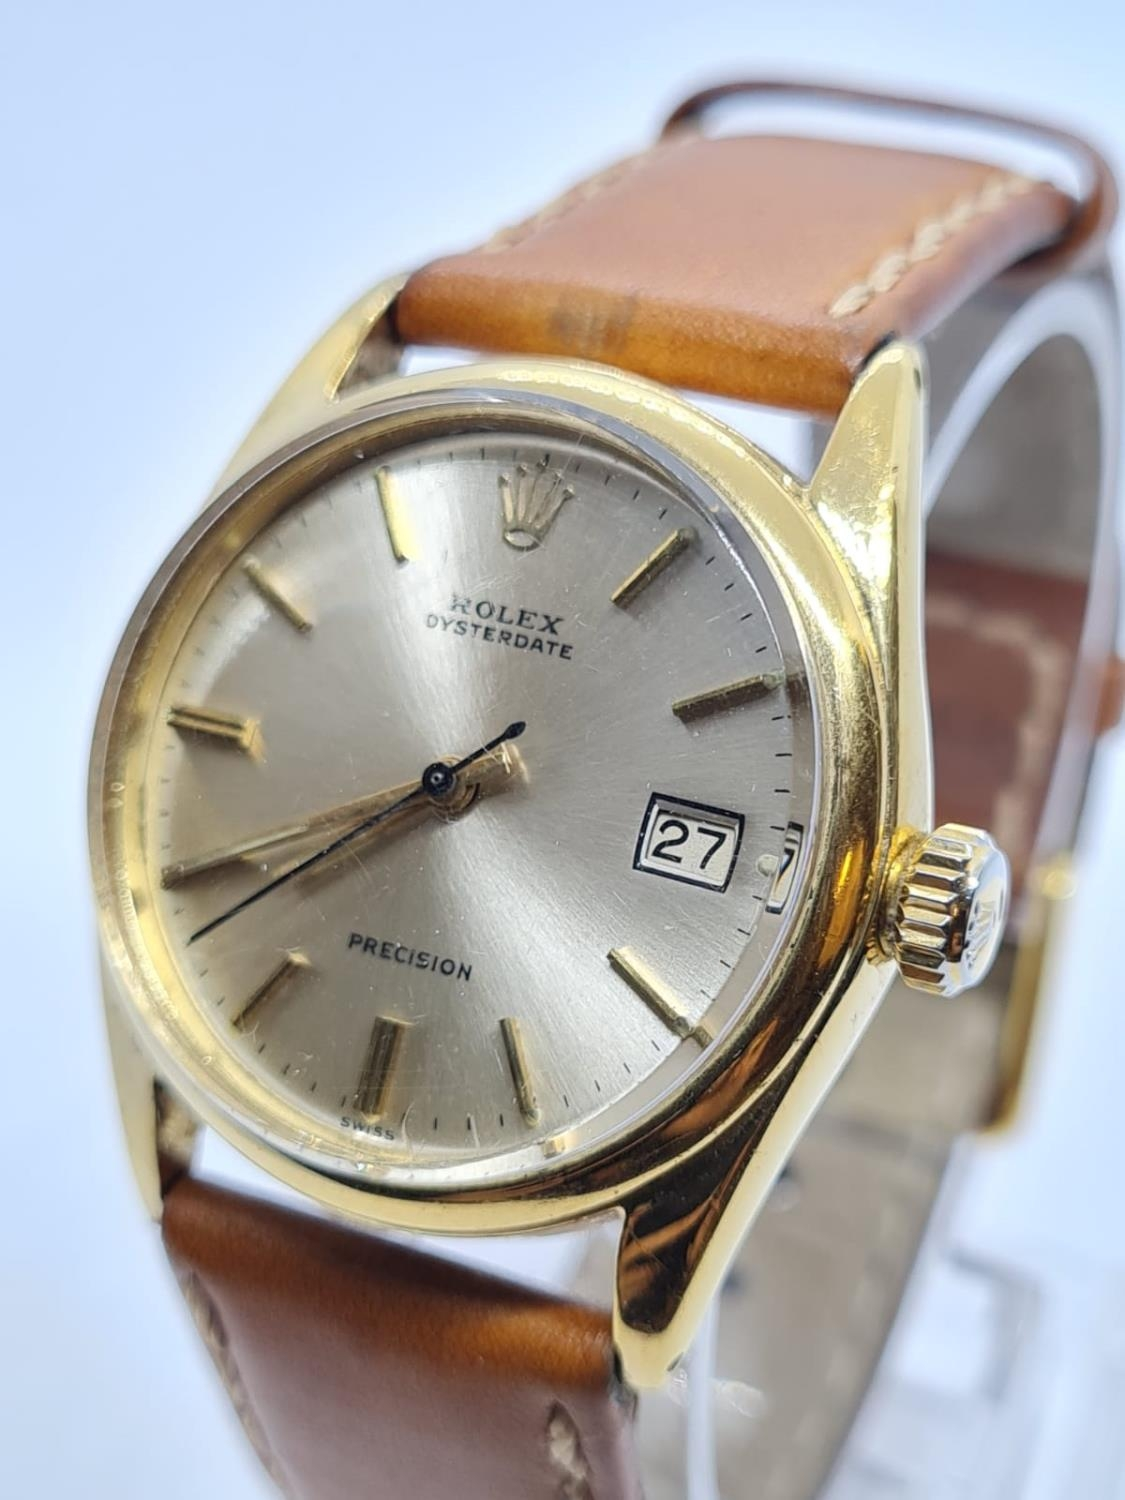 Vintage Rolex Oysterdate Precision Gents WATCH. Round face and genuine brown leather strap. 32mm - Image 2 of 5